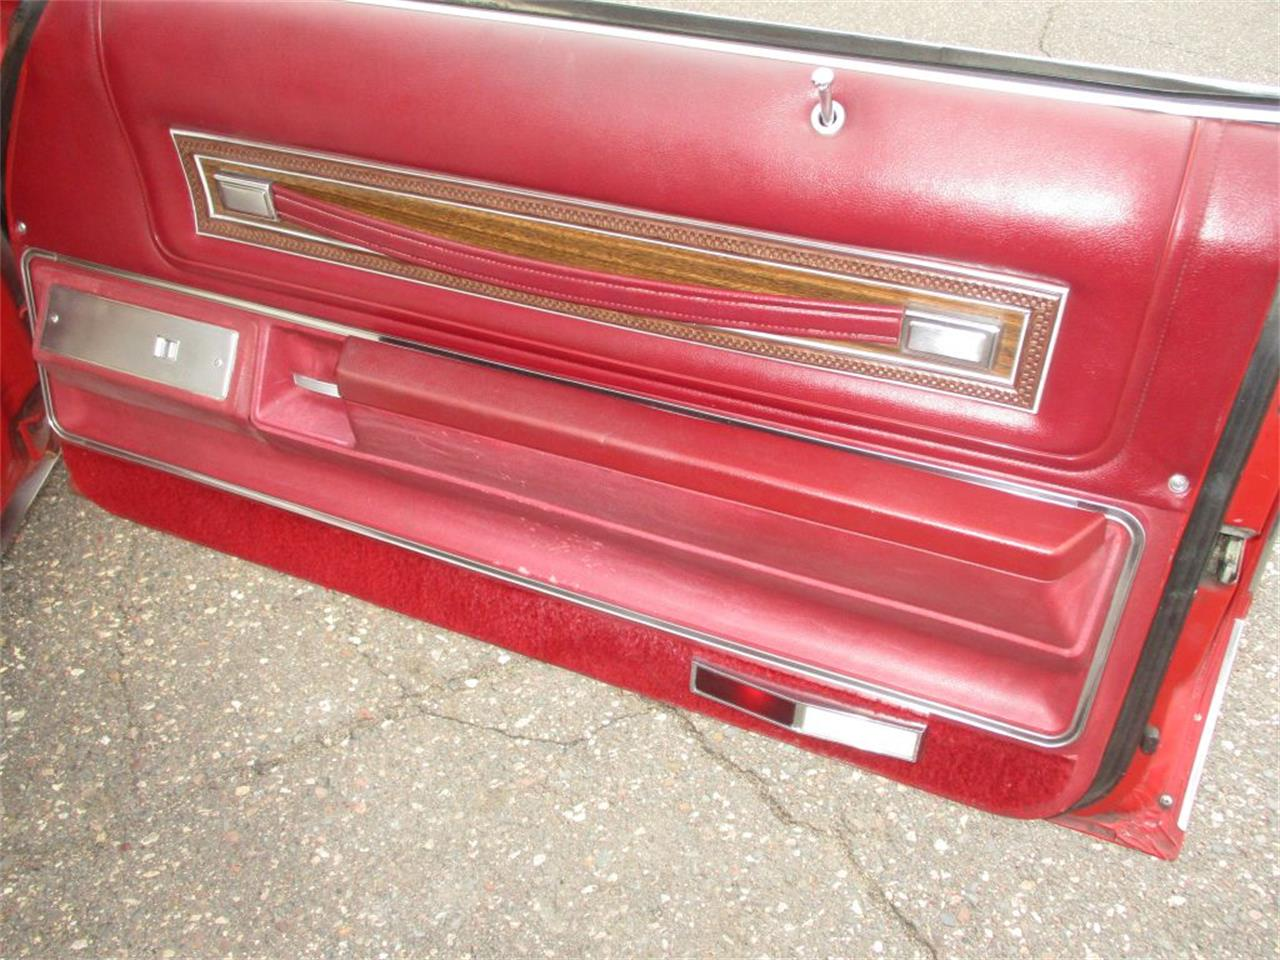 1975 Pontiac Grand Ville for sale in Ham Lake, MN – photo 42